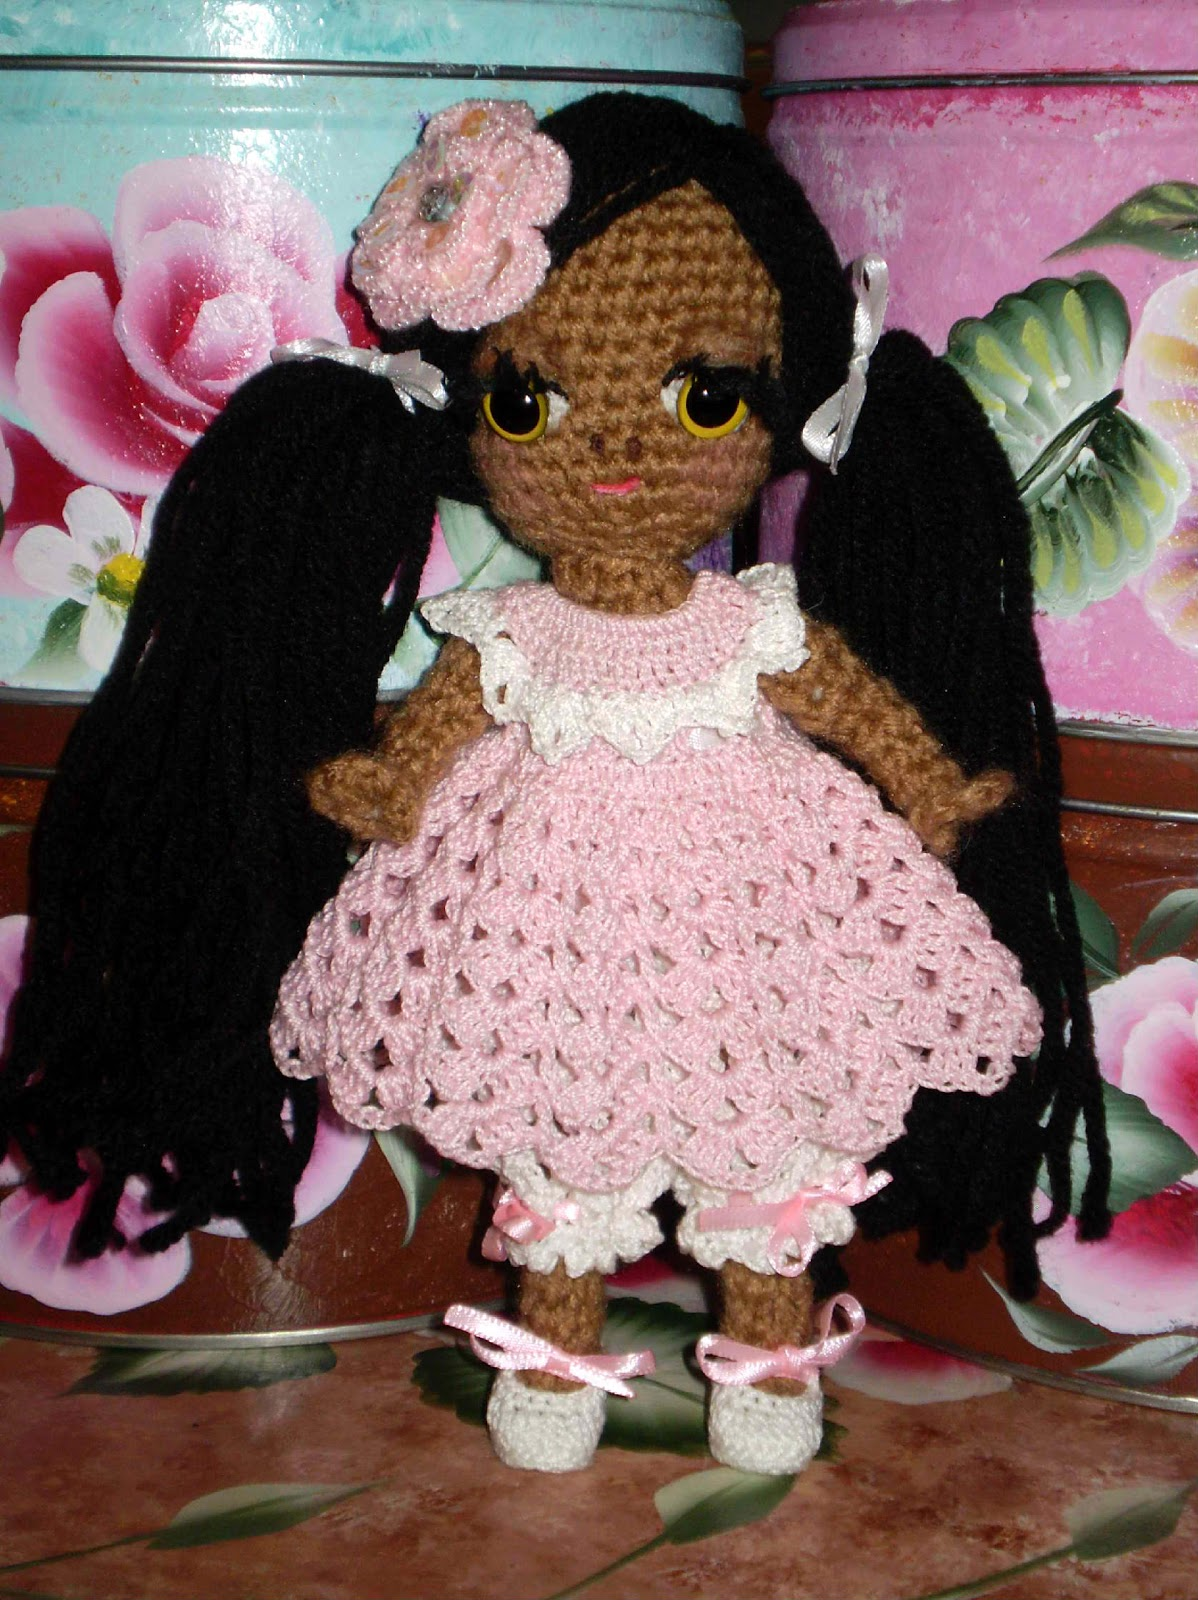 FREE CROCHET VINTAGE DOLL PATTERNS - Crochet and Knitting Patterns